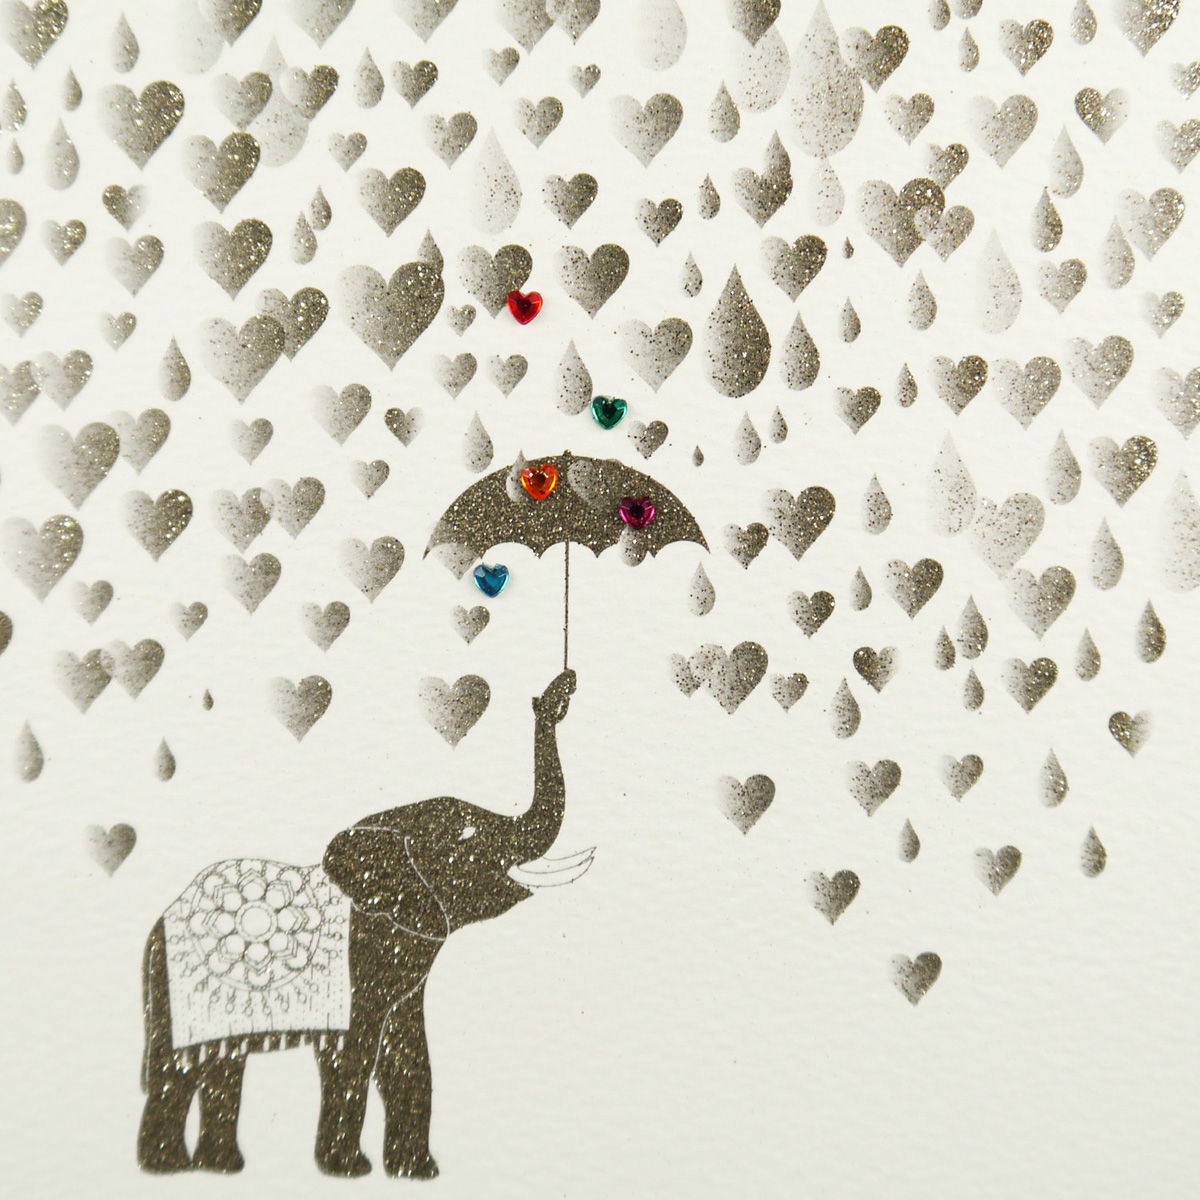 Elephant Raining Hearts